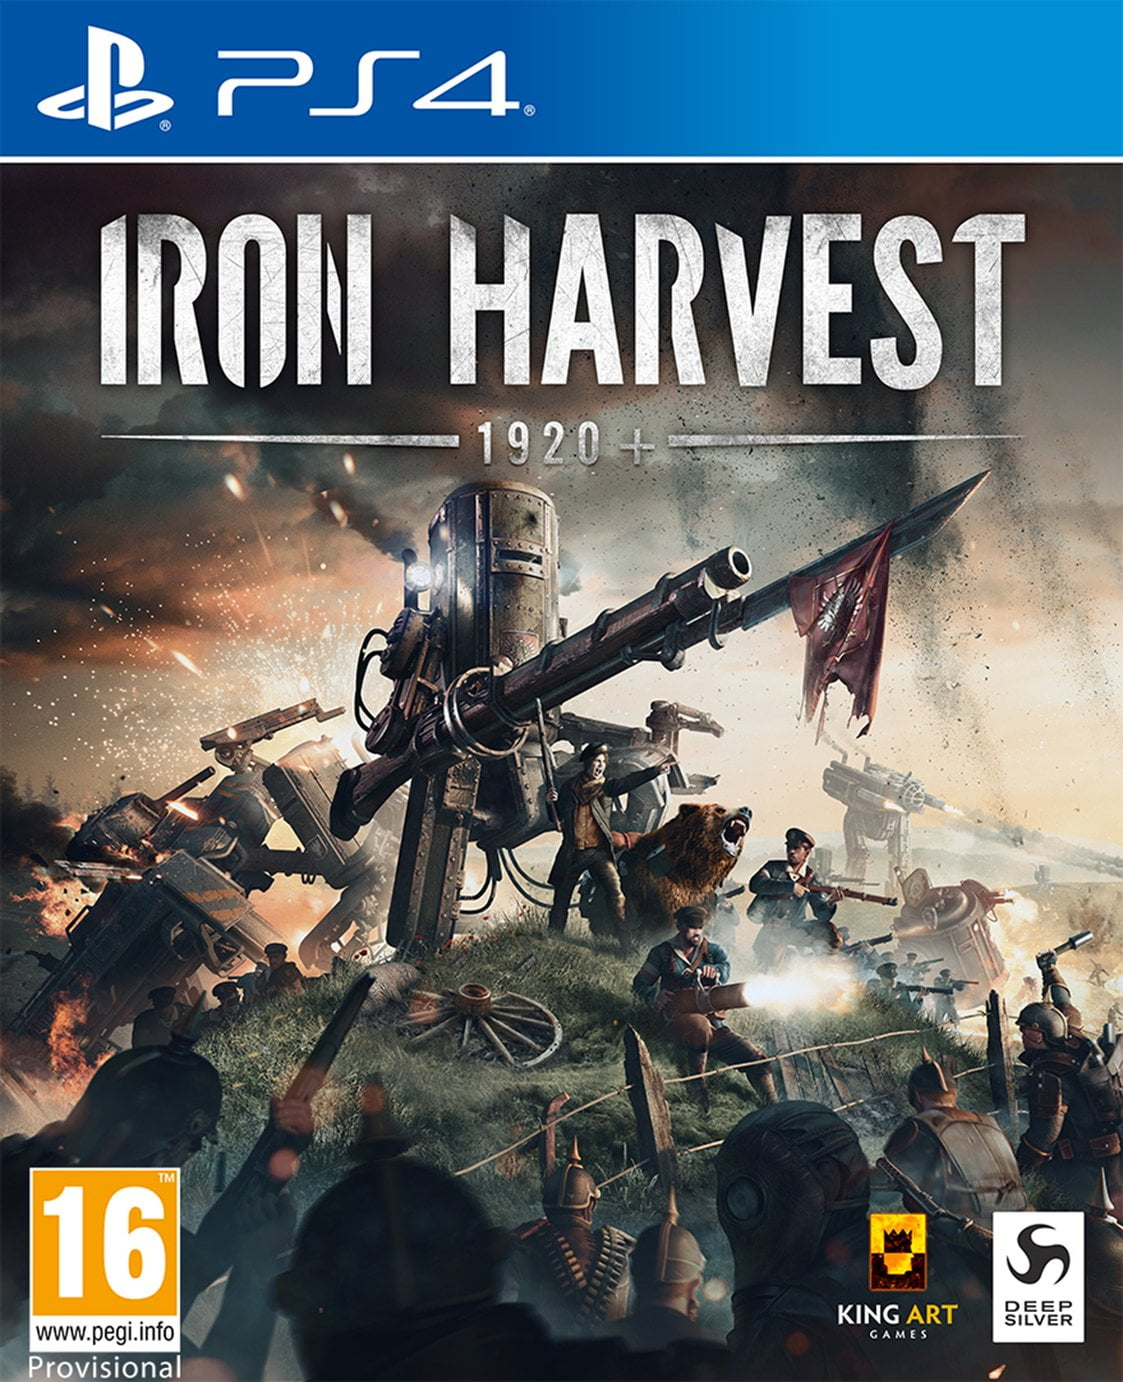 Iron Harvest PS4 Game Pre-Order